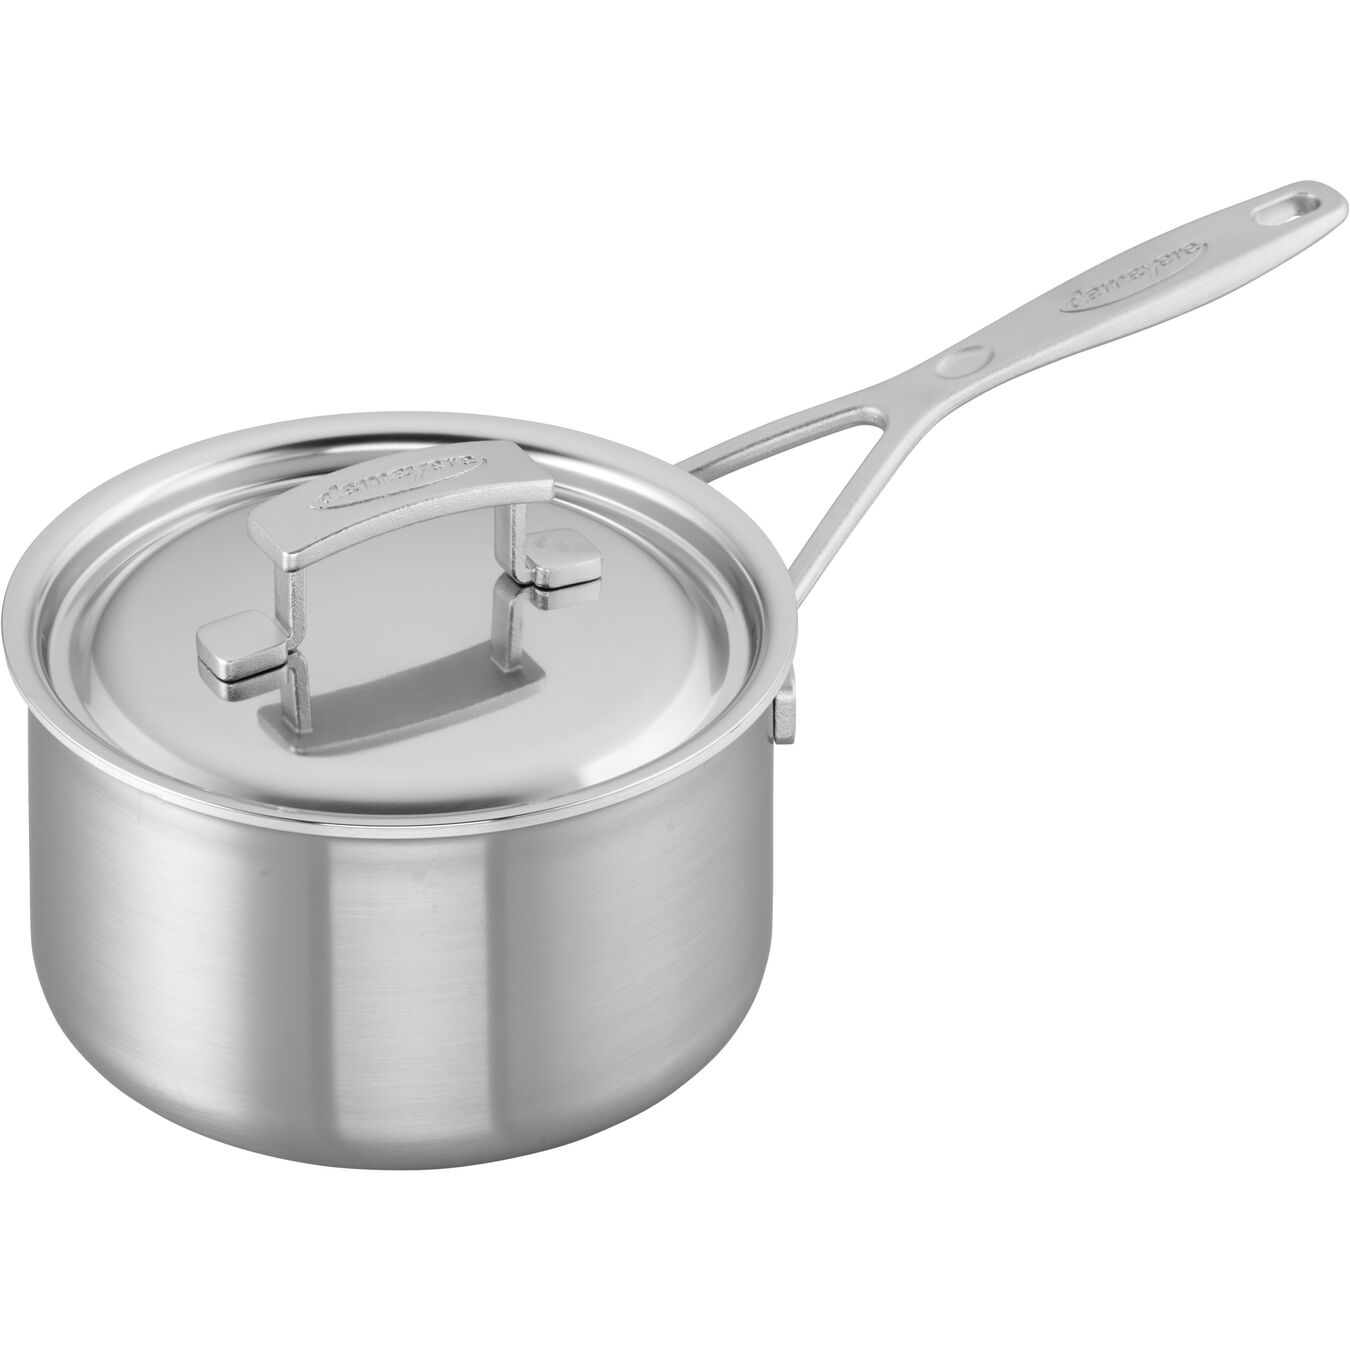 1.75 qt Sauce pan, 18/10 Stainless Steel ,,large 1